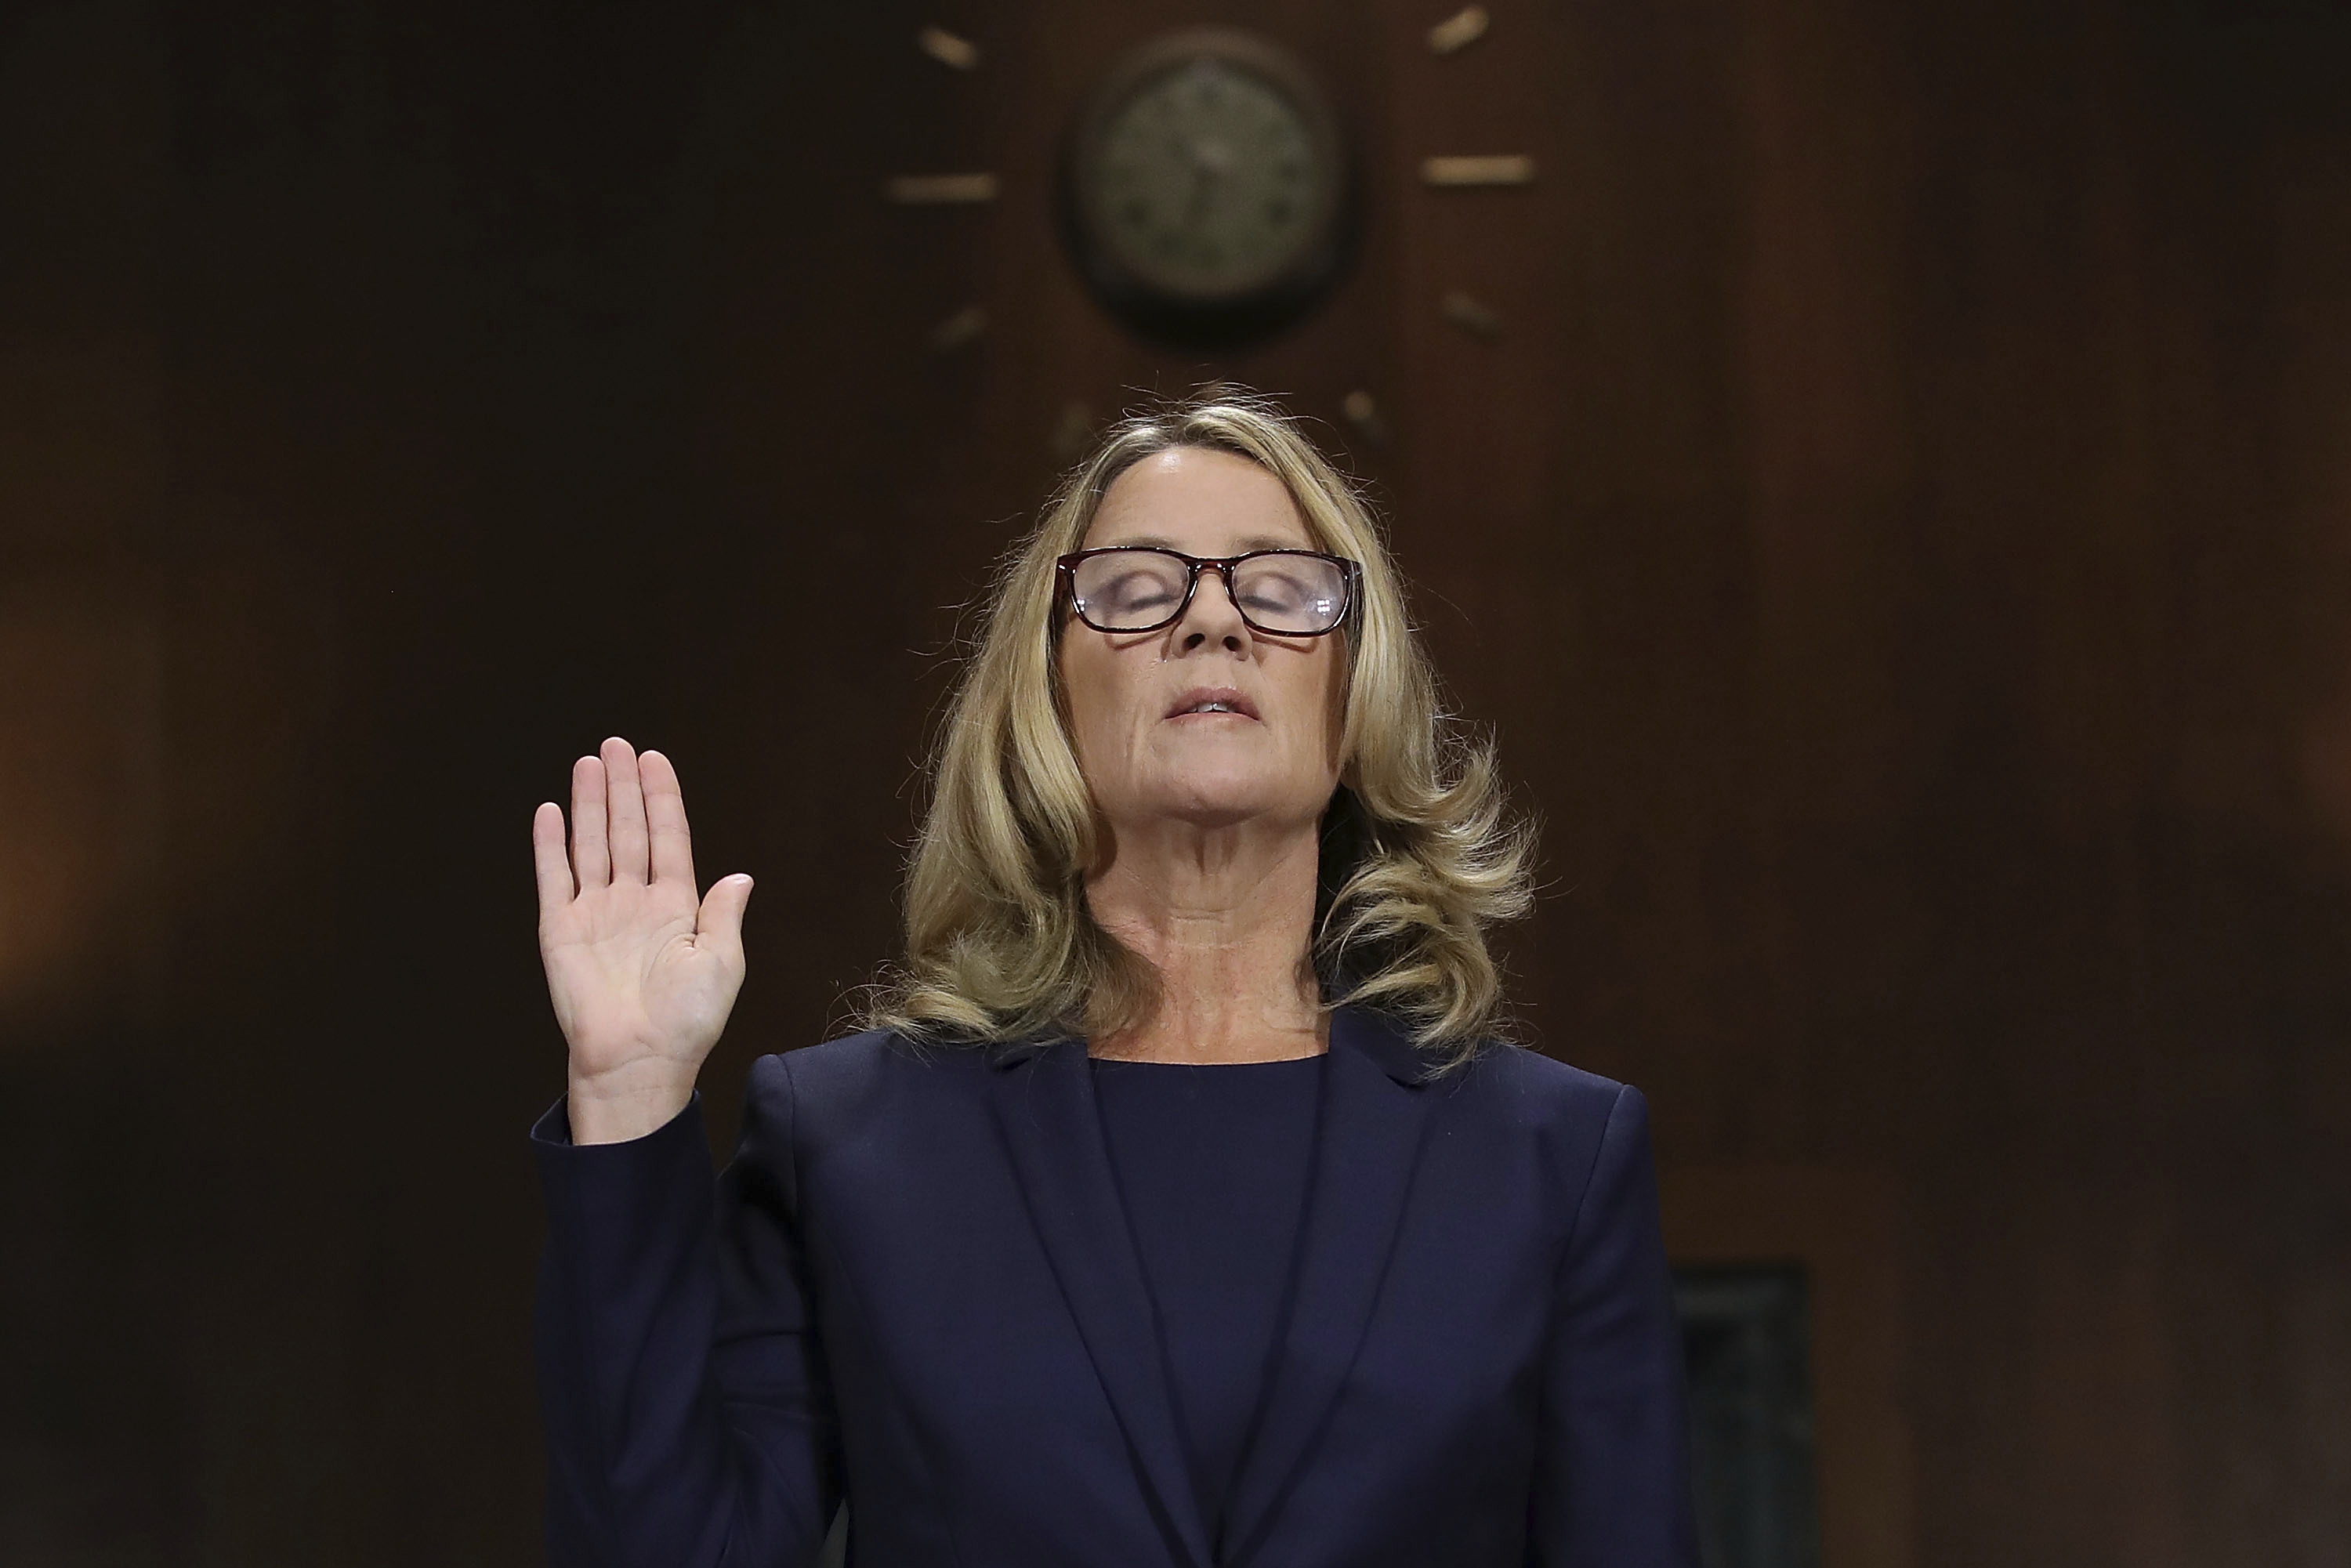 LTE: In Response to Dr. Christine Blasey Ford's Testimony Against Brett Kavanaugh